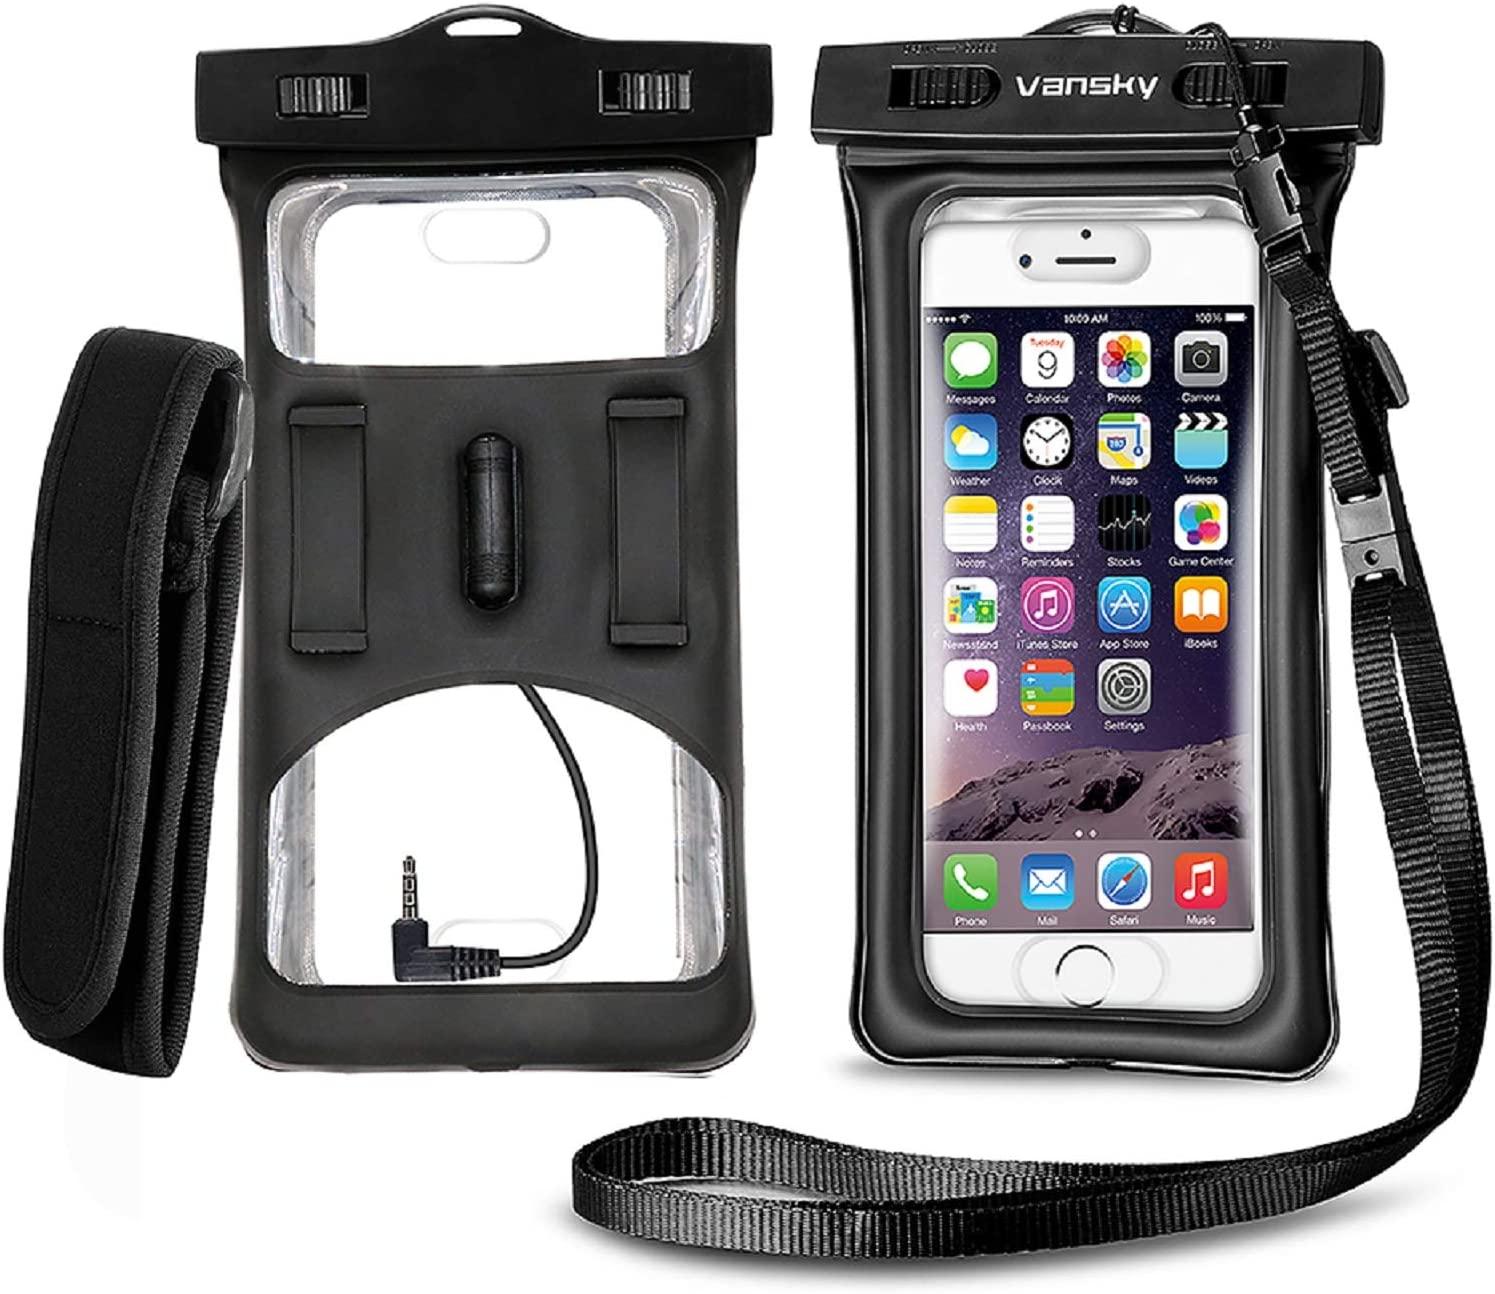 Amazon Com Vansky Floatable Waterproof Case Cellphone Dry Bag With Armband And Audio Jack For Iphone 12 11 X Xr 7 7 Plus Samsung Tpu Construction Ipx8 Certified Waterproof Phone Pouch